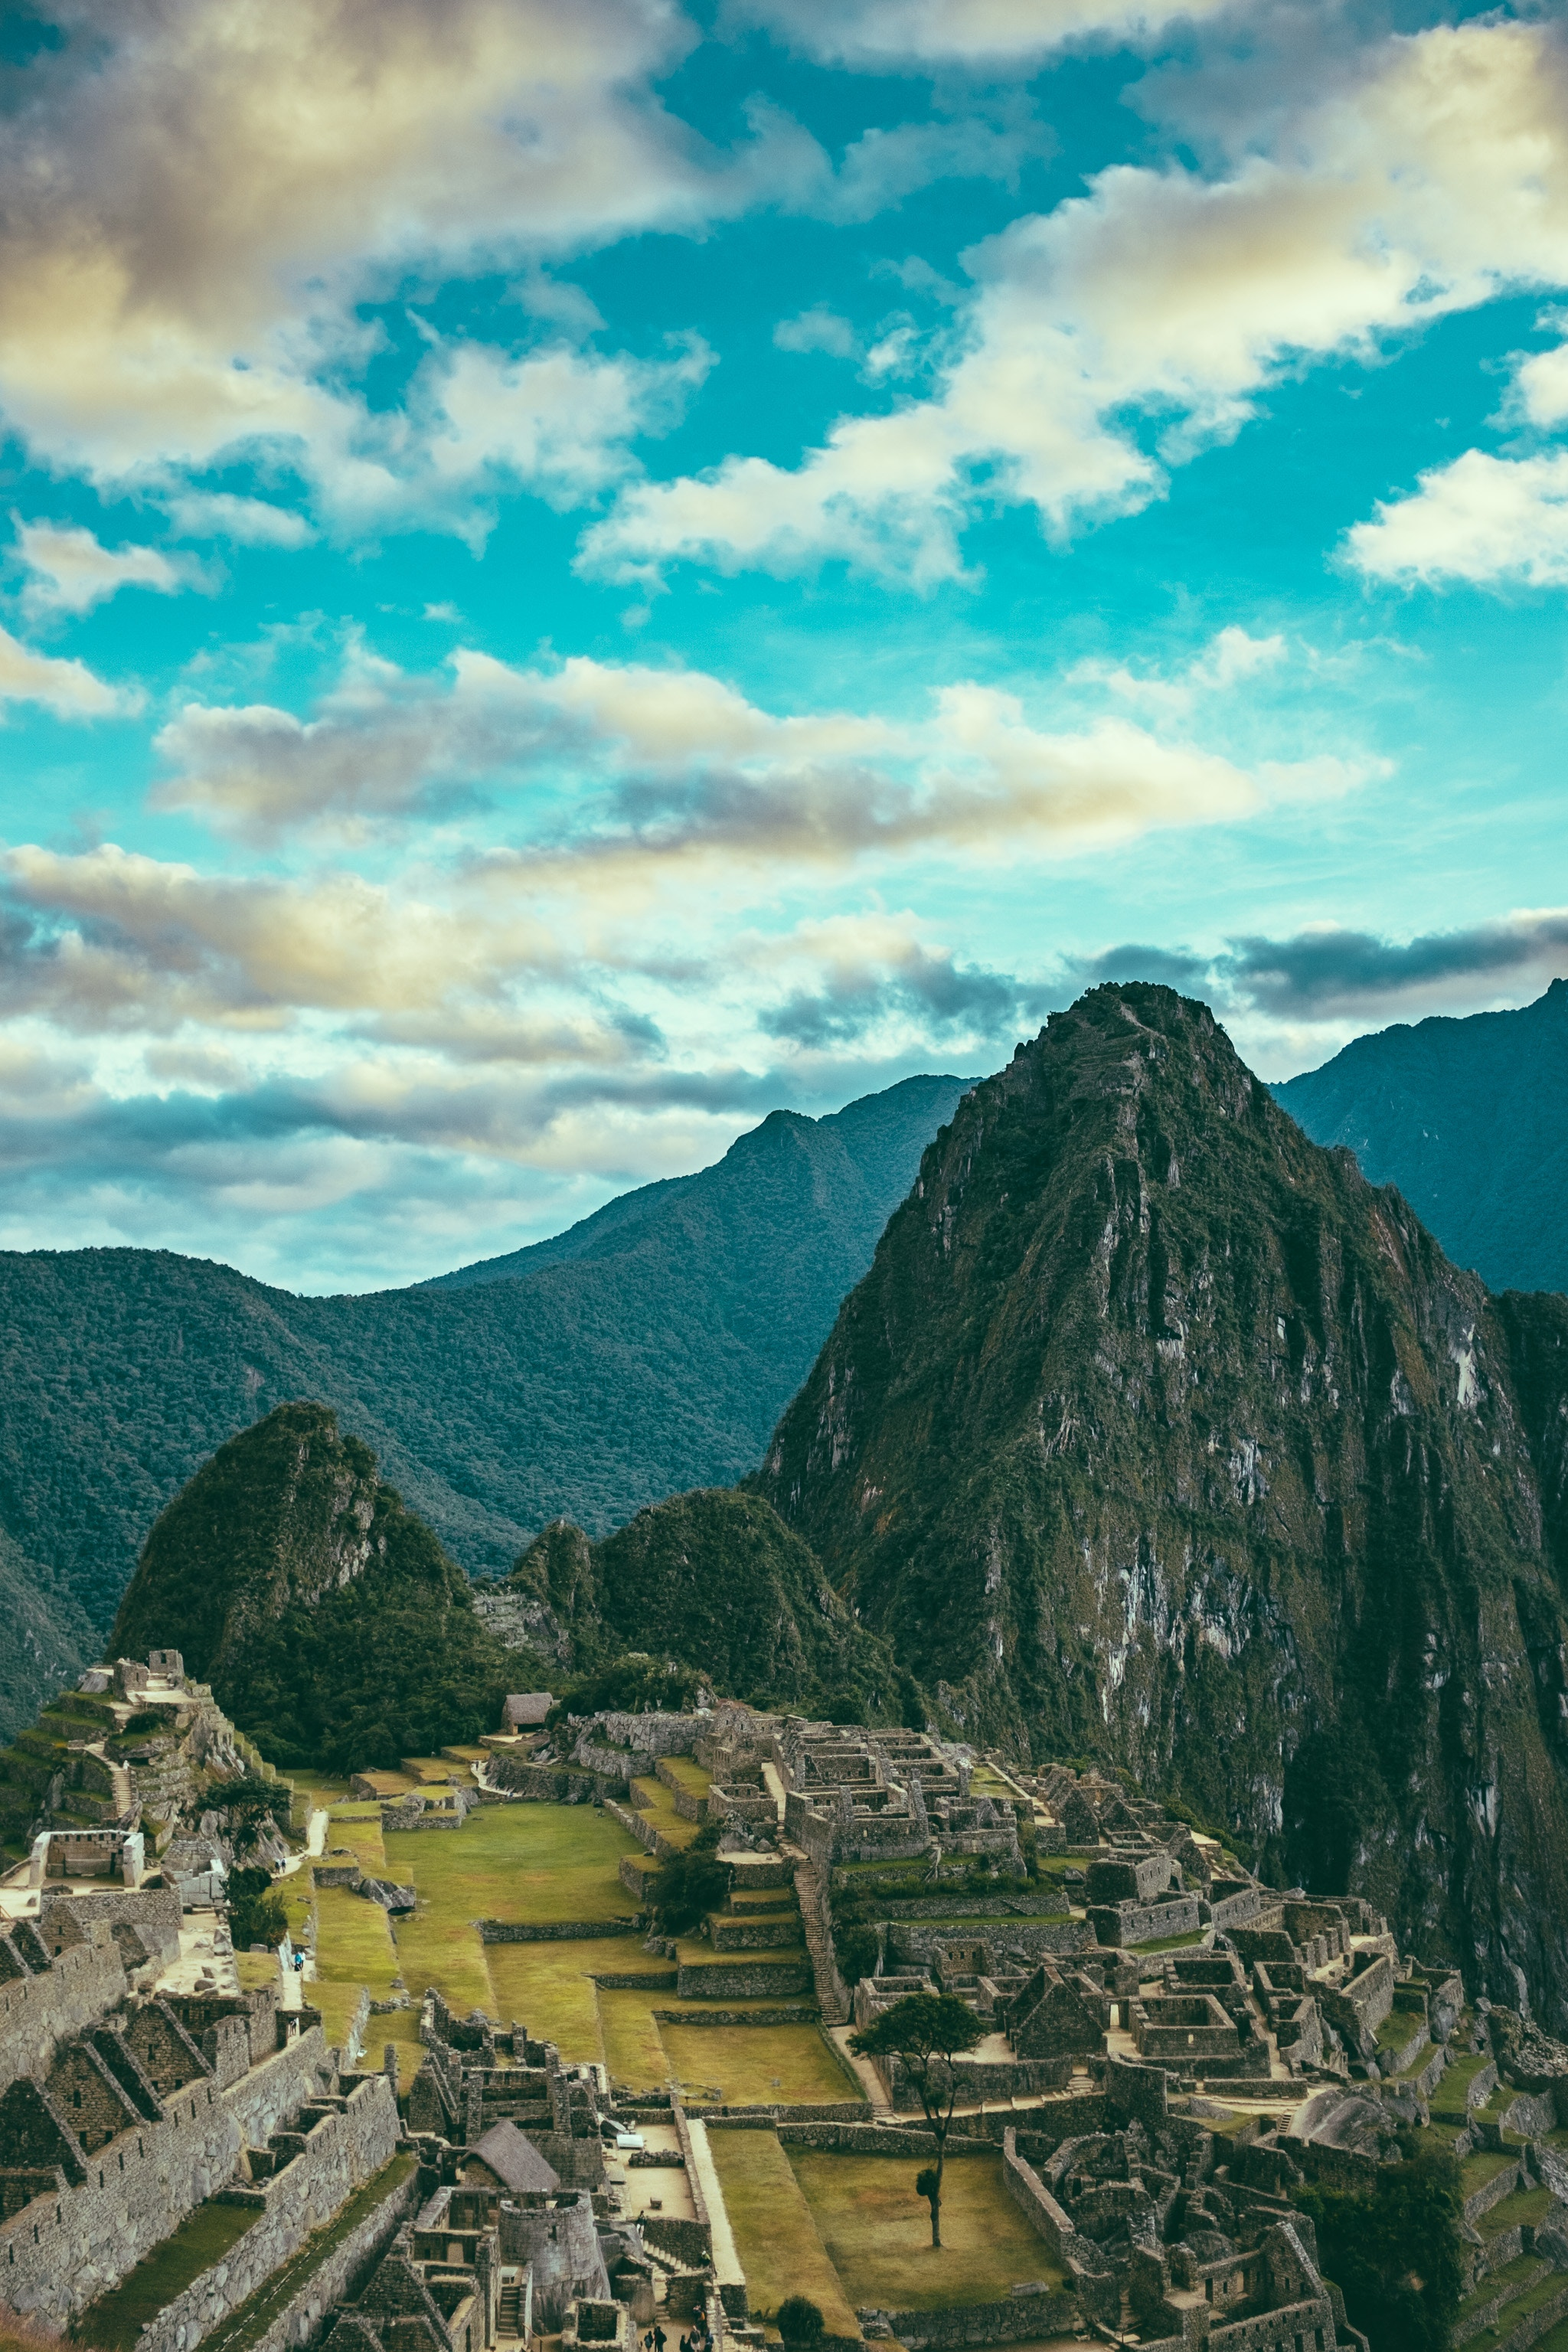 Spiritual Journey to Peru - Machu Picchu & Indigenous Healing CeremonyOctober 13-20, 2018